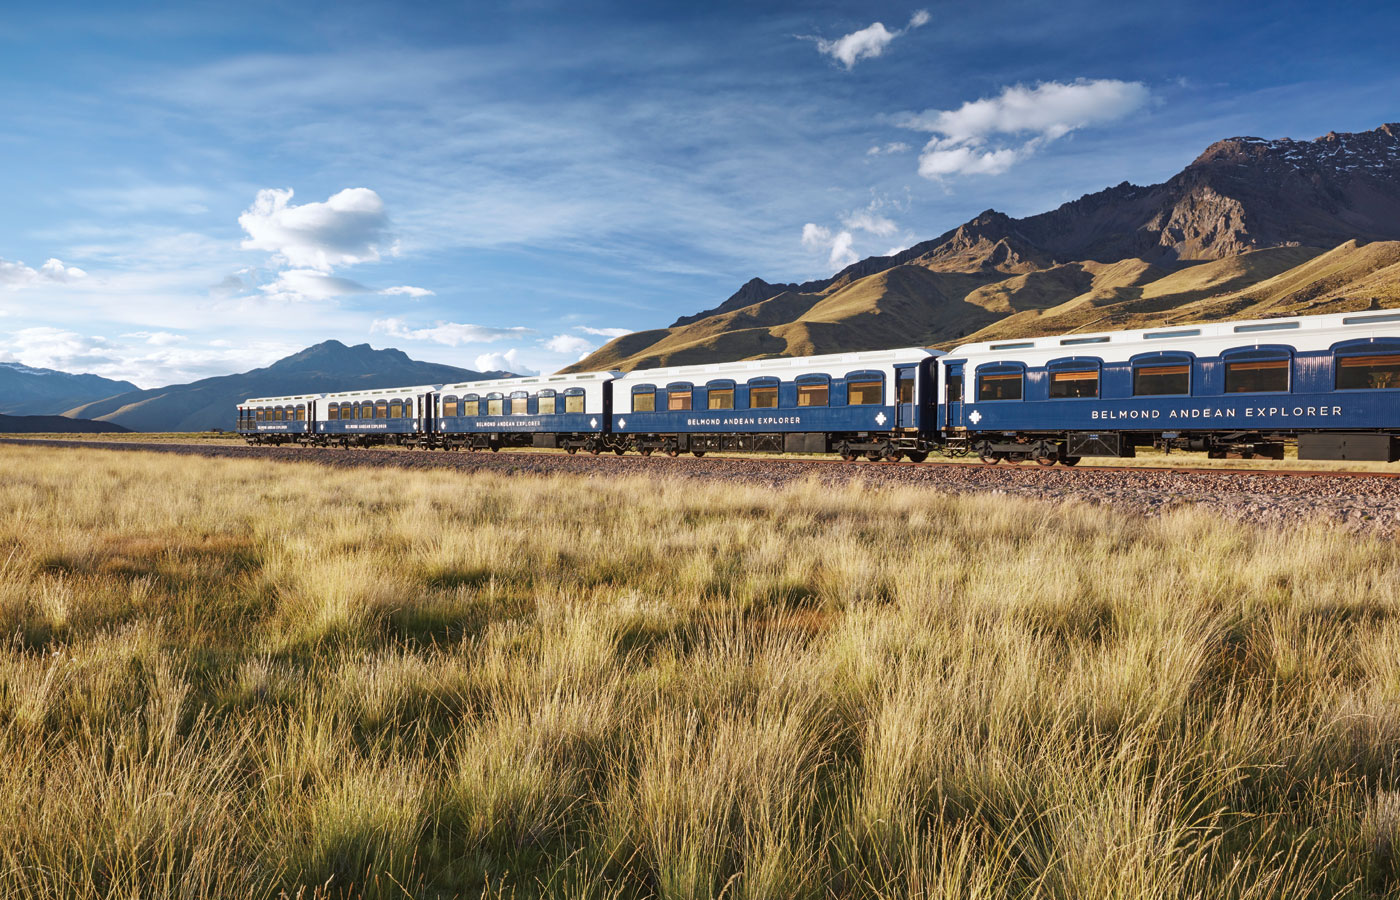 Belmond Andean Explorer luxury train, Peru